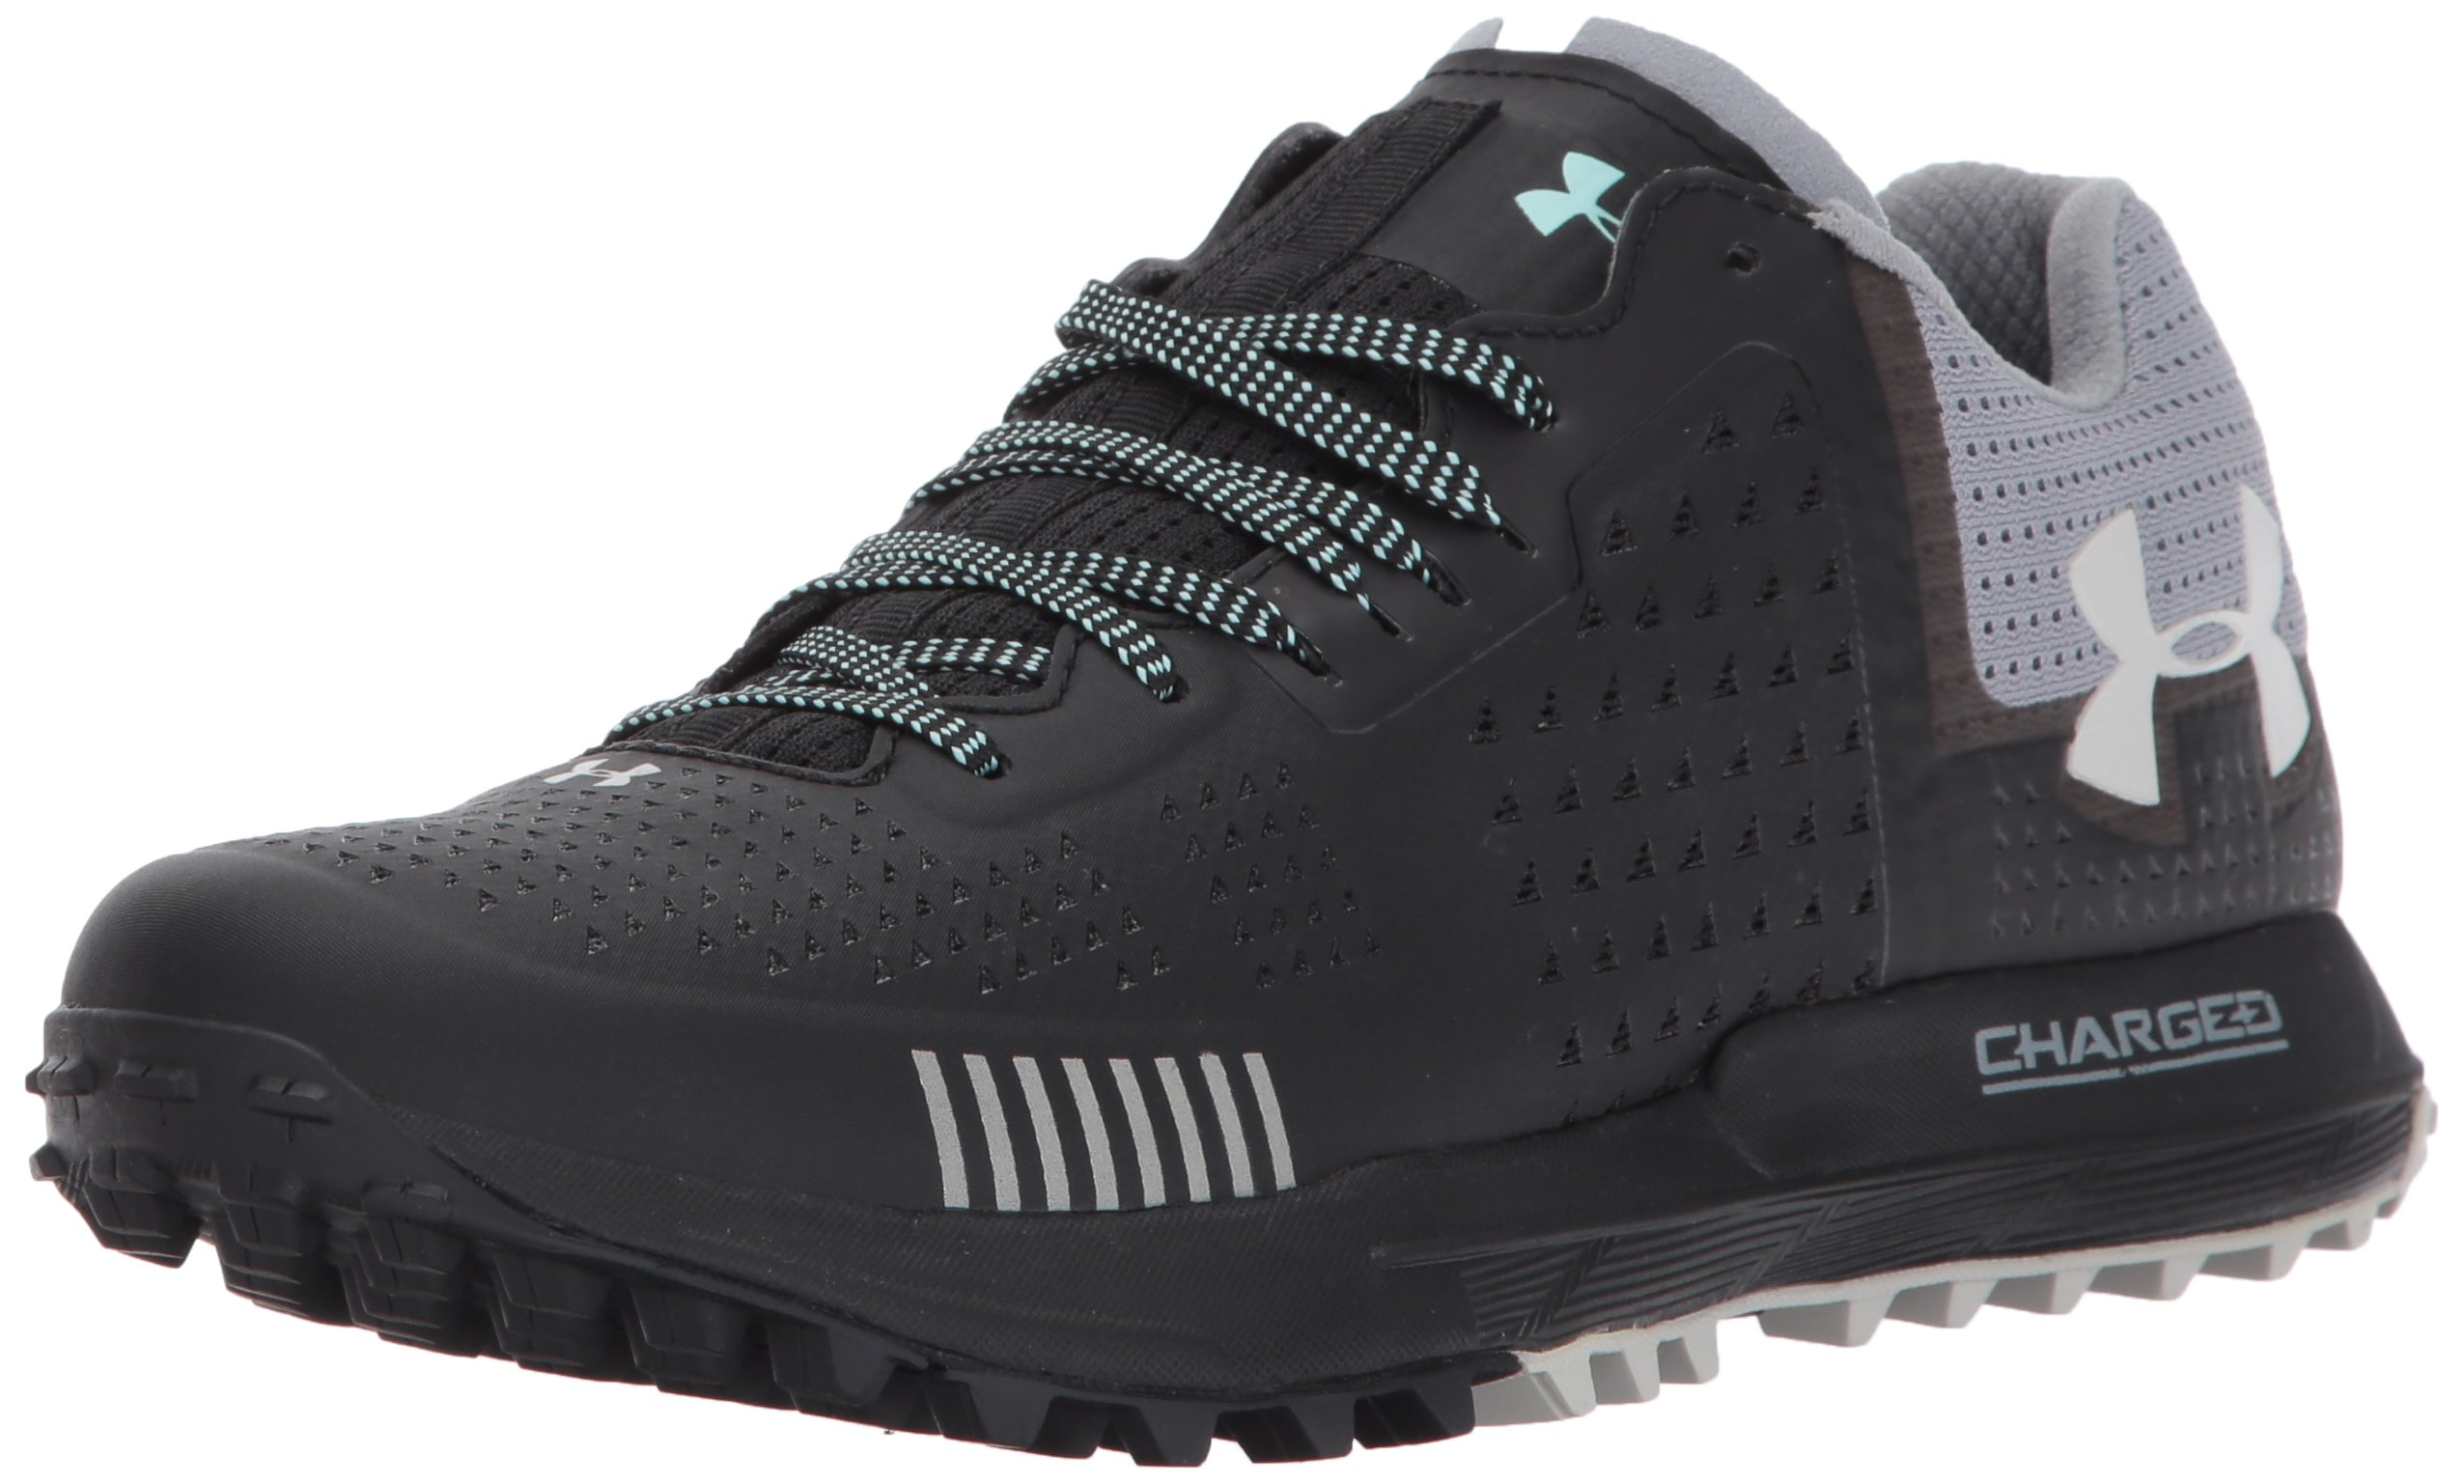 Under Armour Women's Horizon RTT, Black/Steel/Elemental, 11 B(M) US